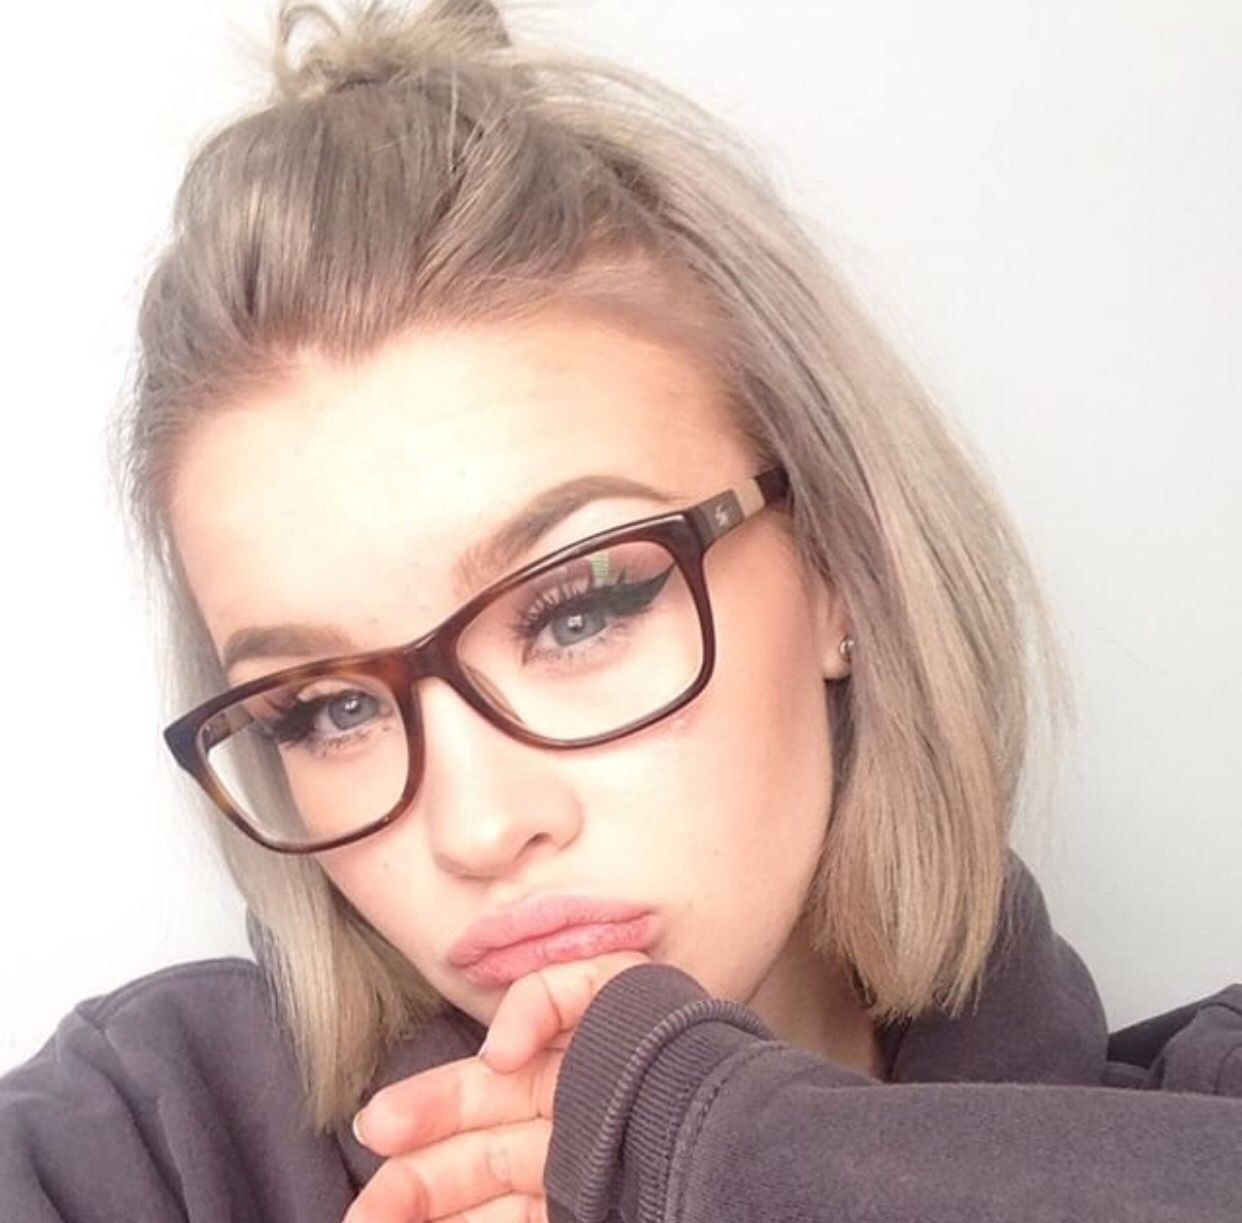 Short hairstyles with glasses - Short Hair Up Do